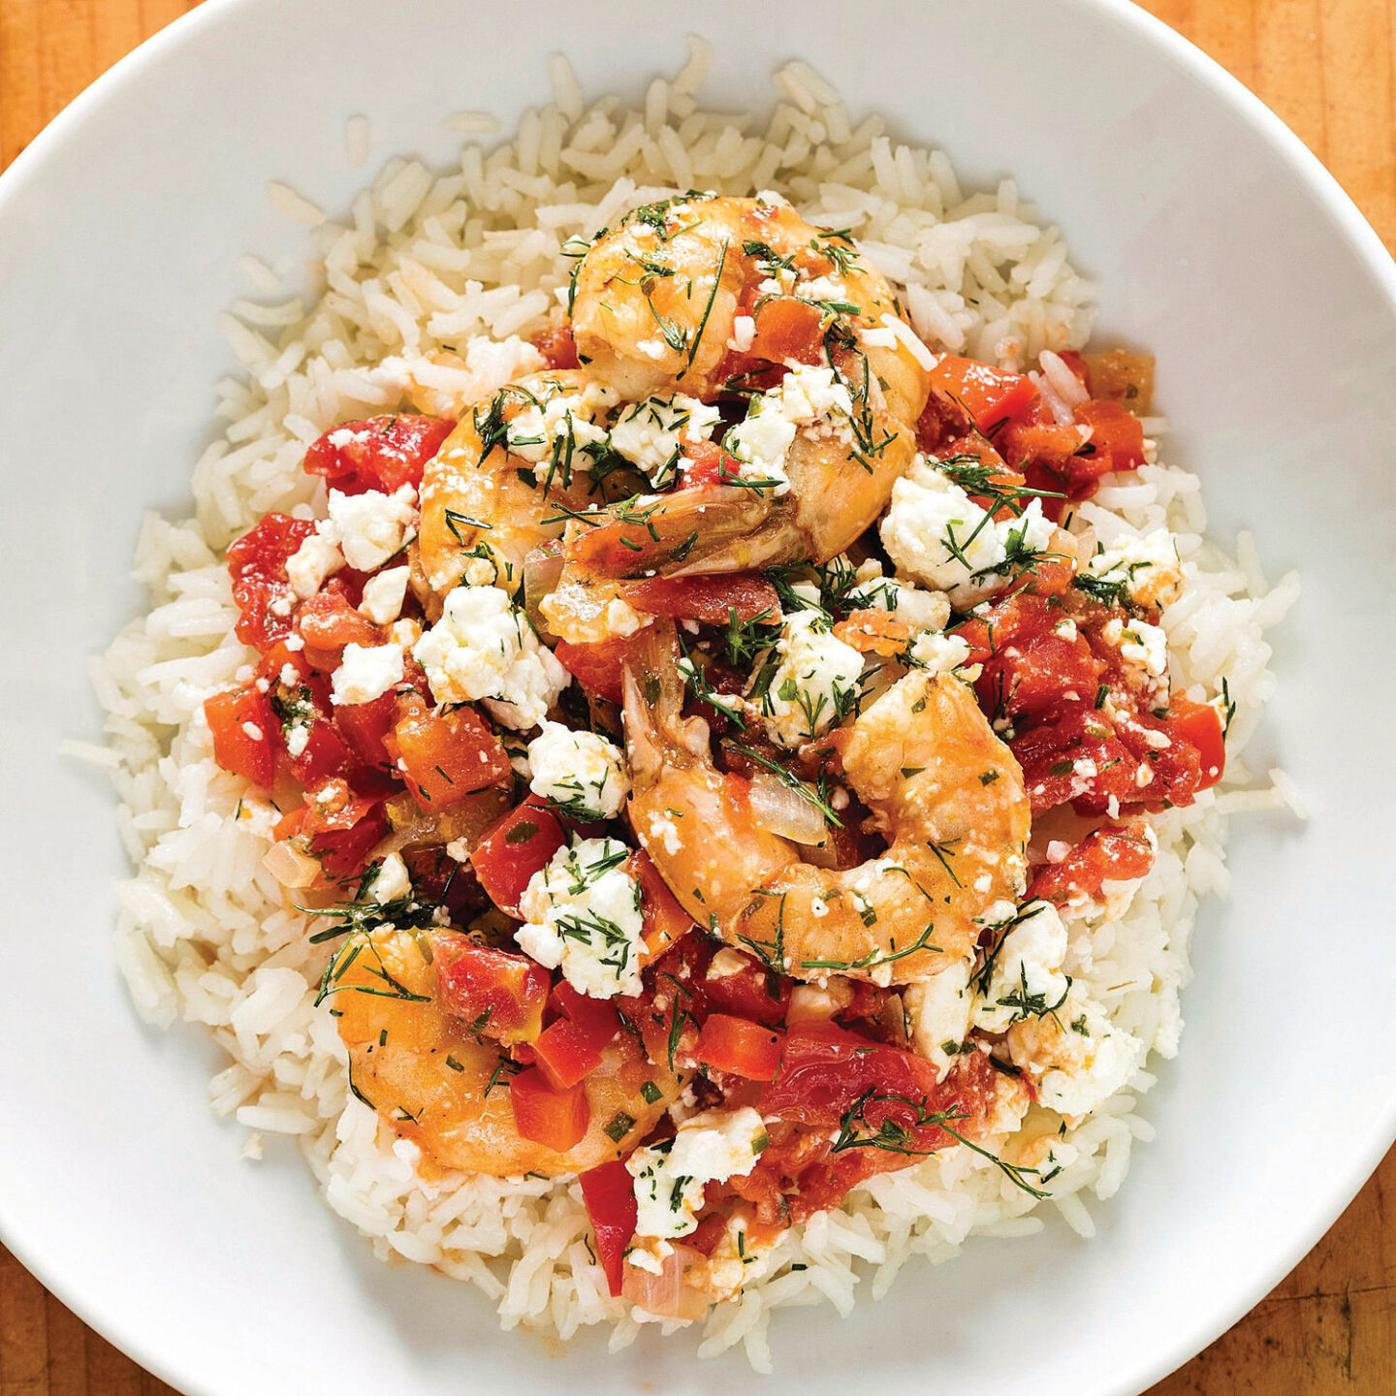 Ouzo adds complexity to shrimp dish